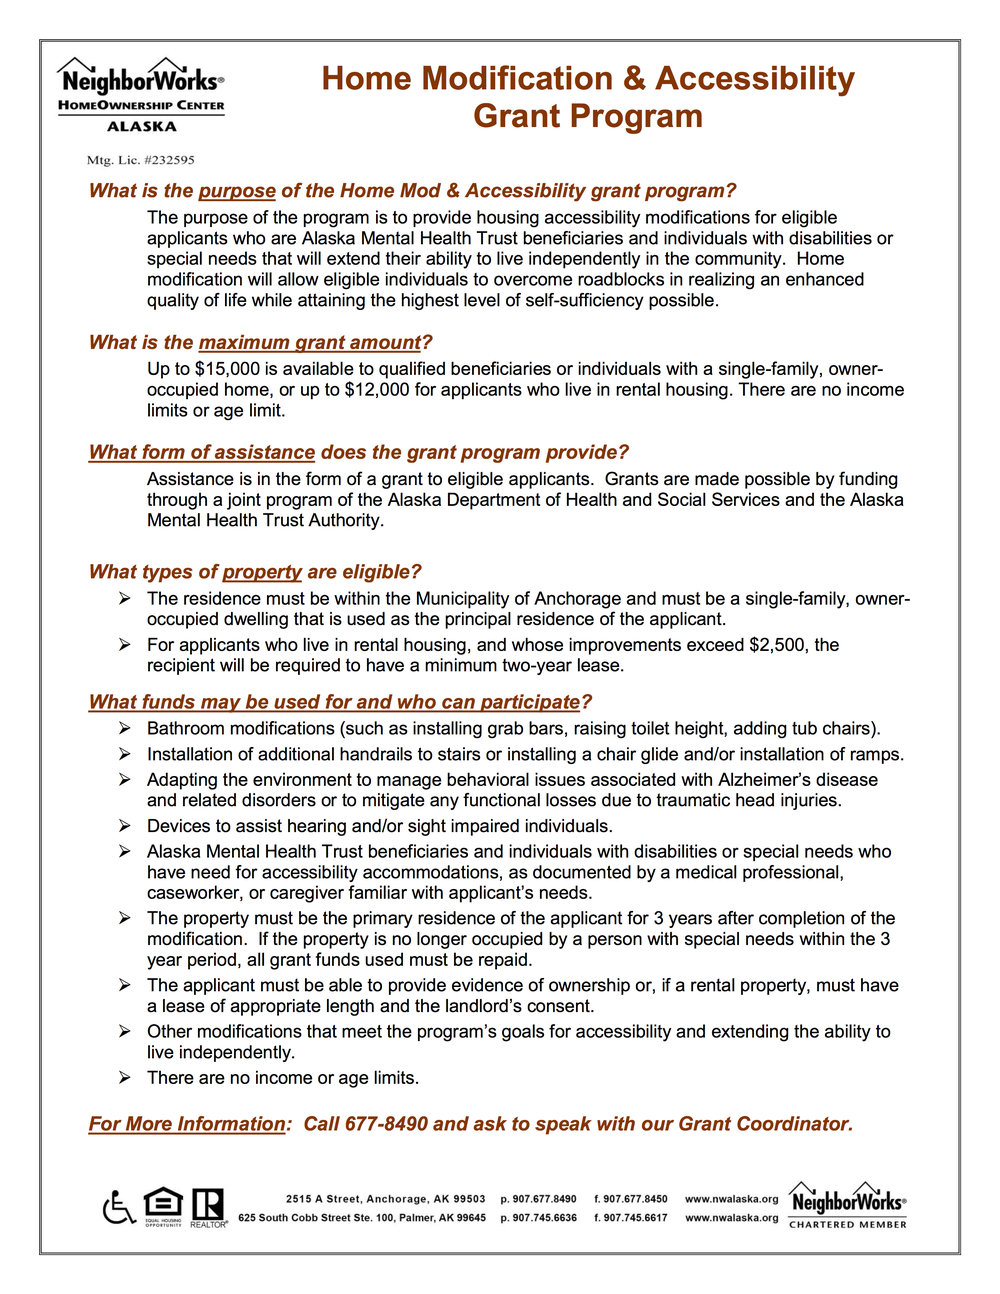 Home Modification & Accessibility Grant Program (Flyer).jpg